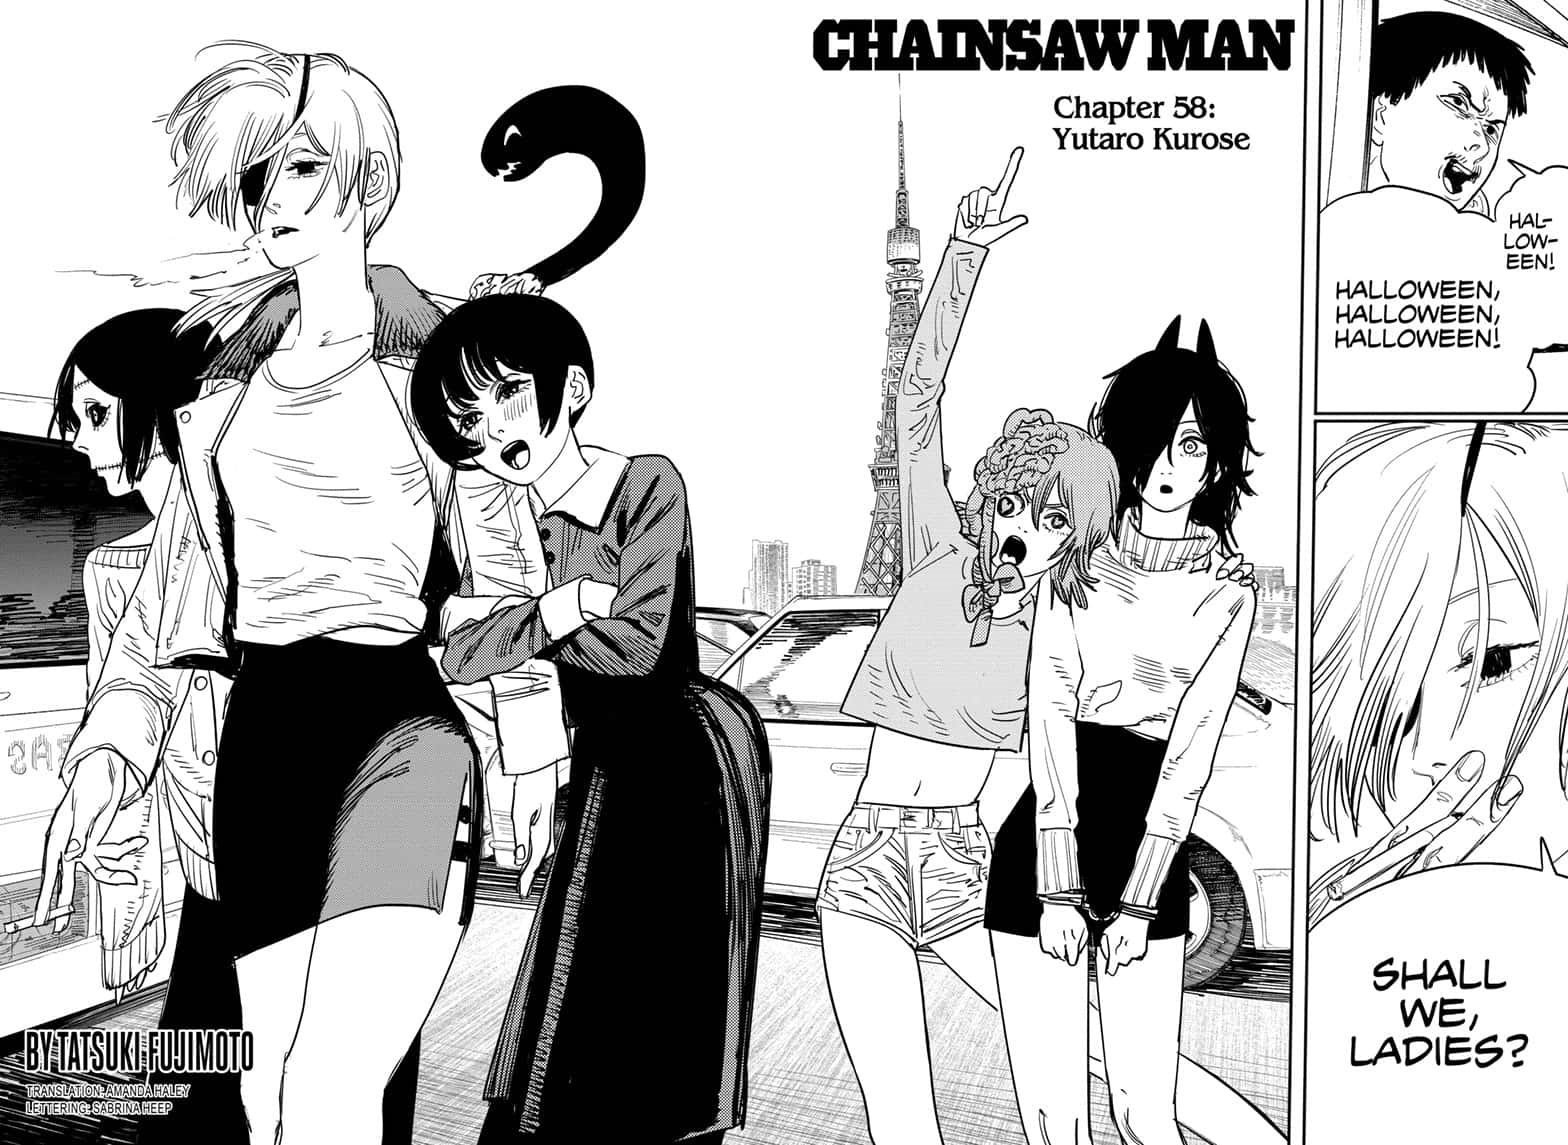 Chainsaw Man, Chapter 58 - Yutaro Kurose image 002